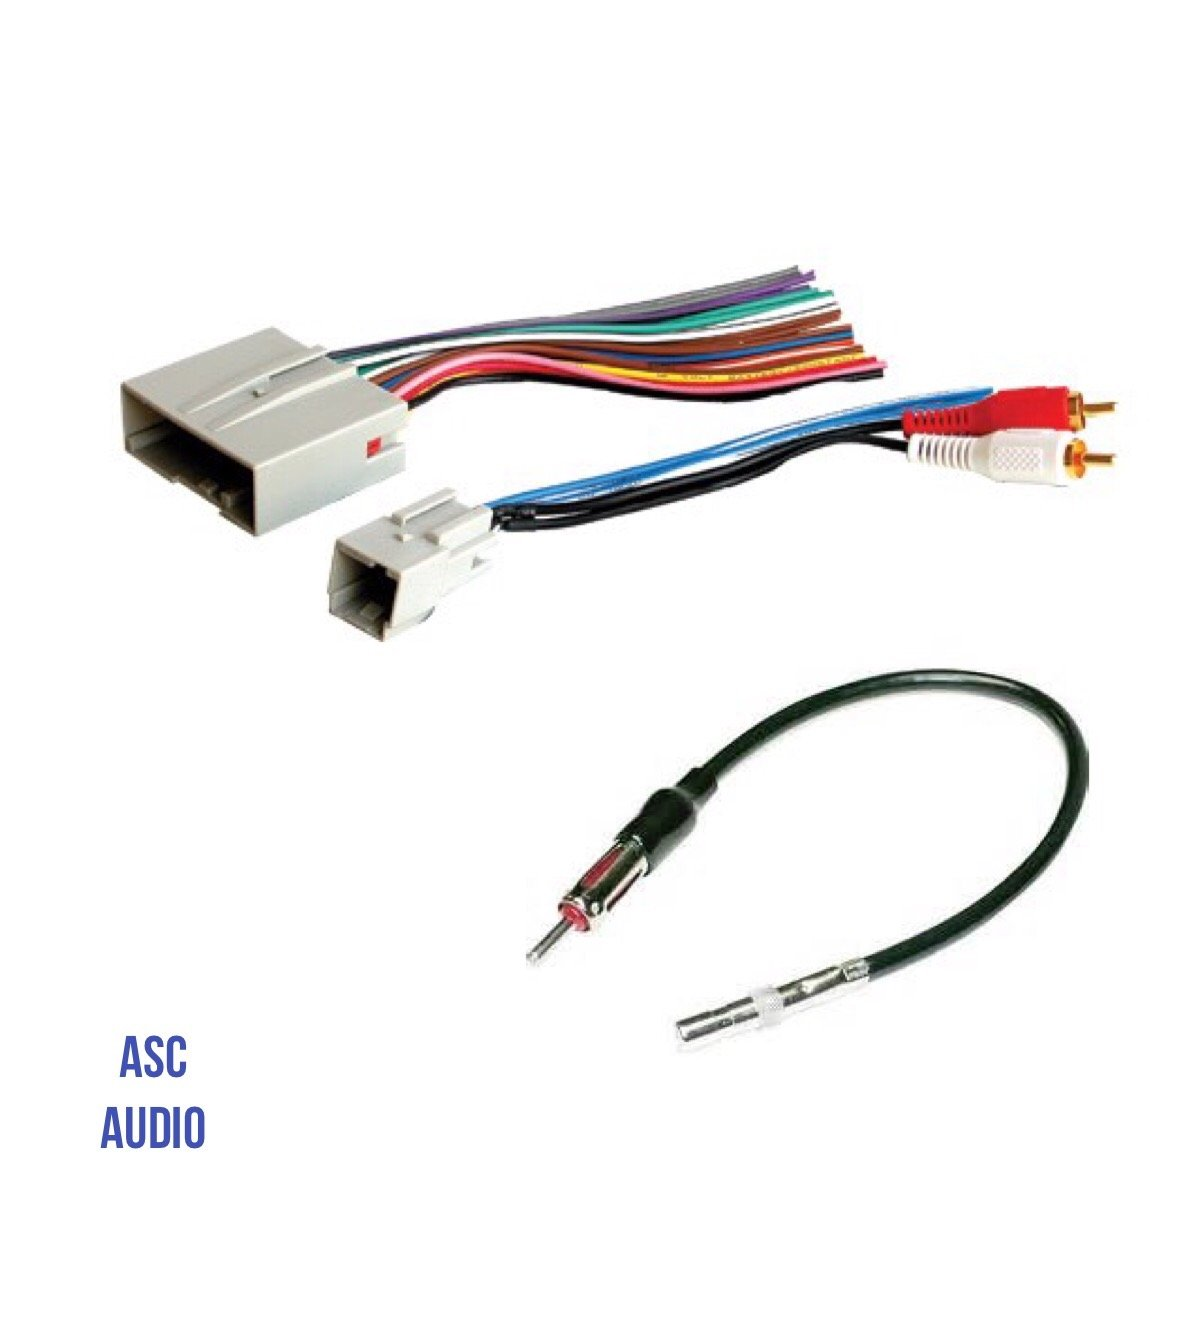 ASC Audio Car Stereo Wire Harness and Antenna Adapter to install an Aftermarket Radio for some Ford Lincoln Mazda Mercury Vehicles- Compatible Vehicles listed below